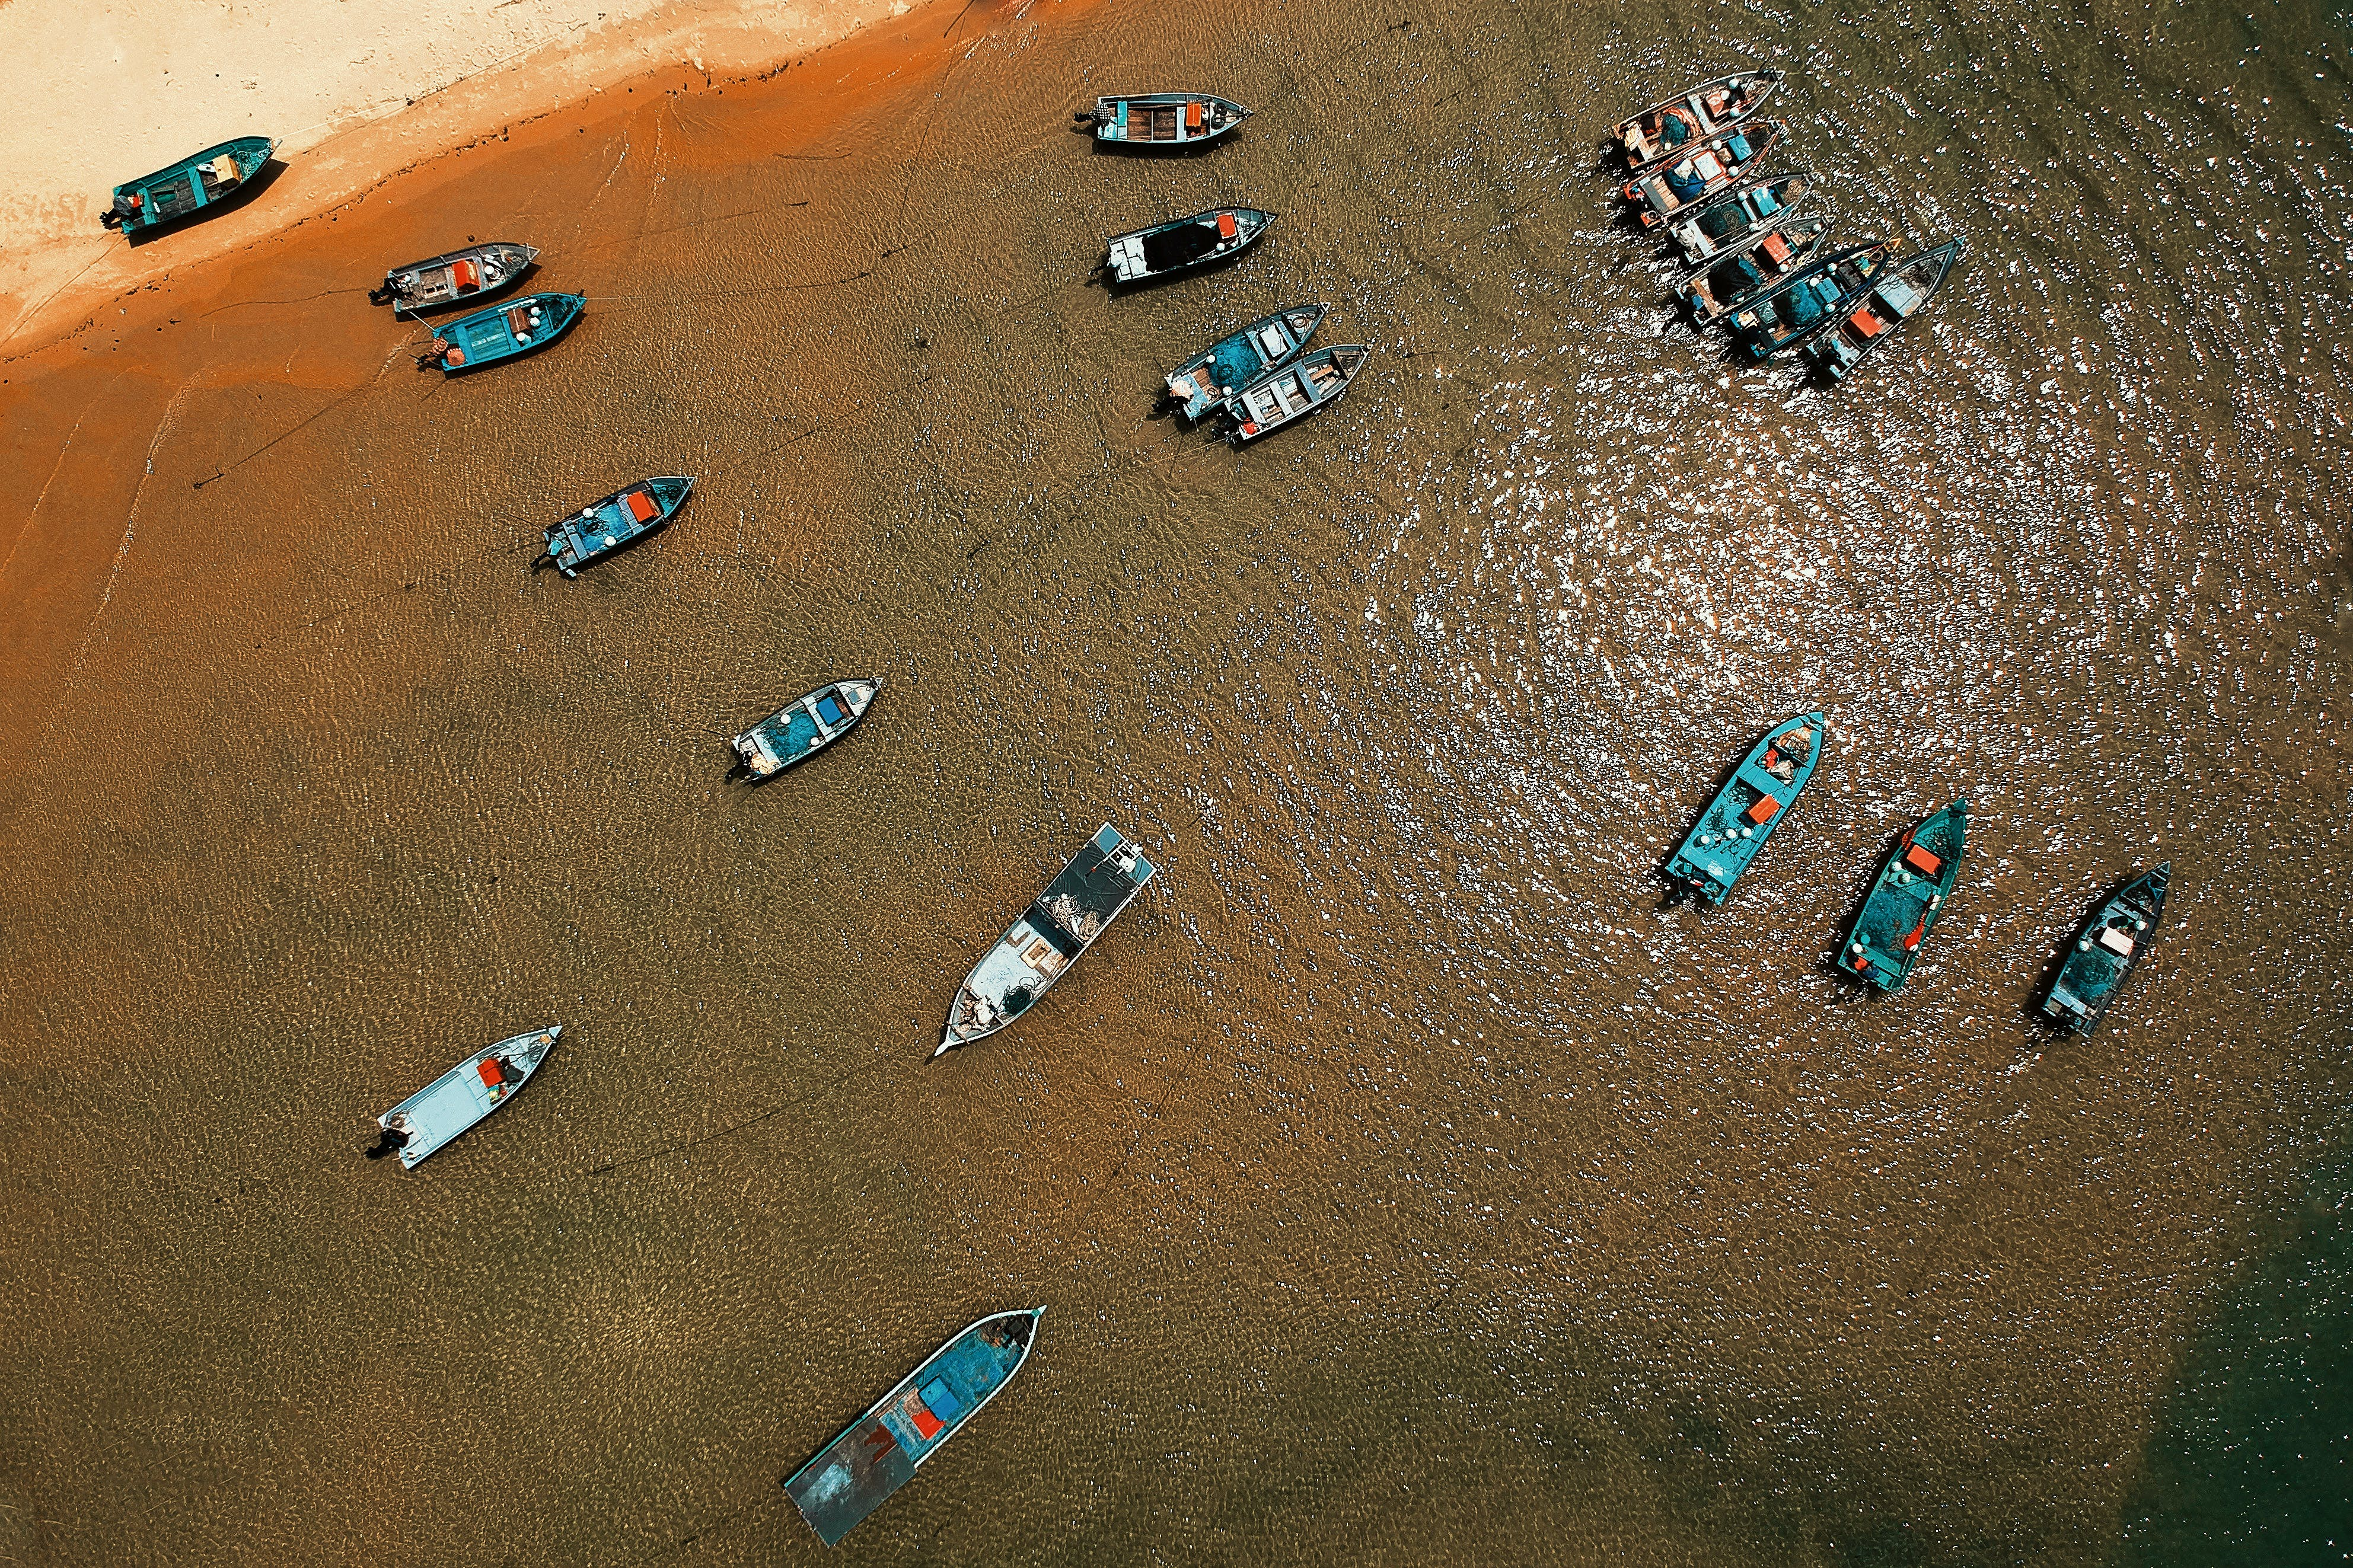 Aerial View of Boats Cruising on Water